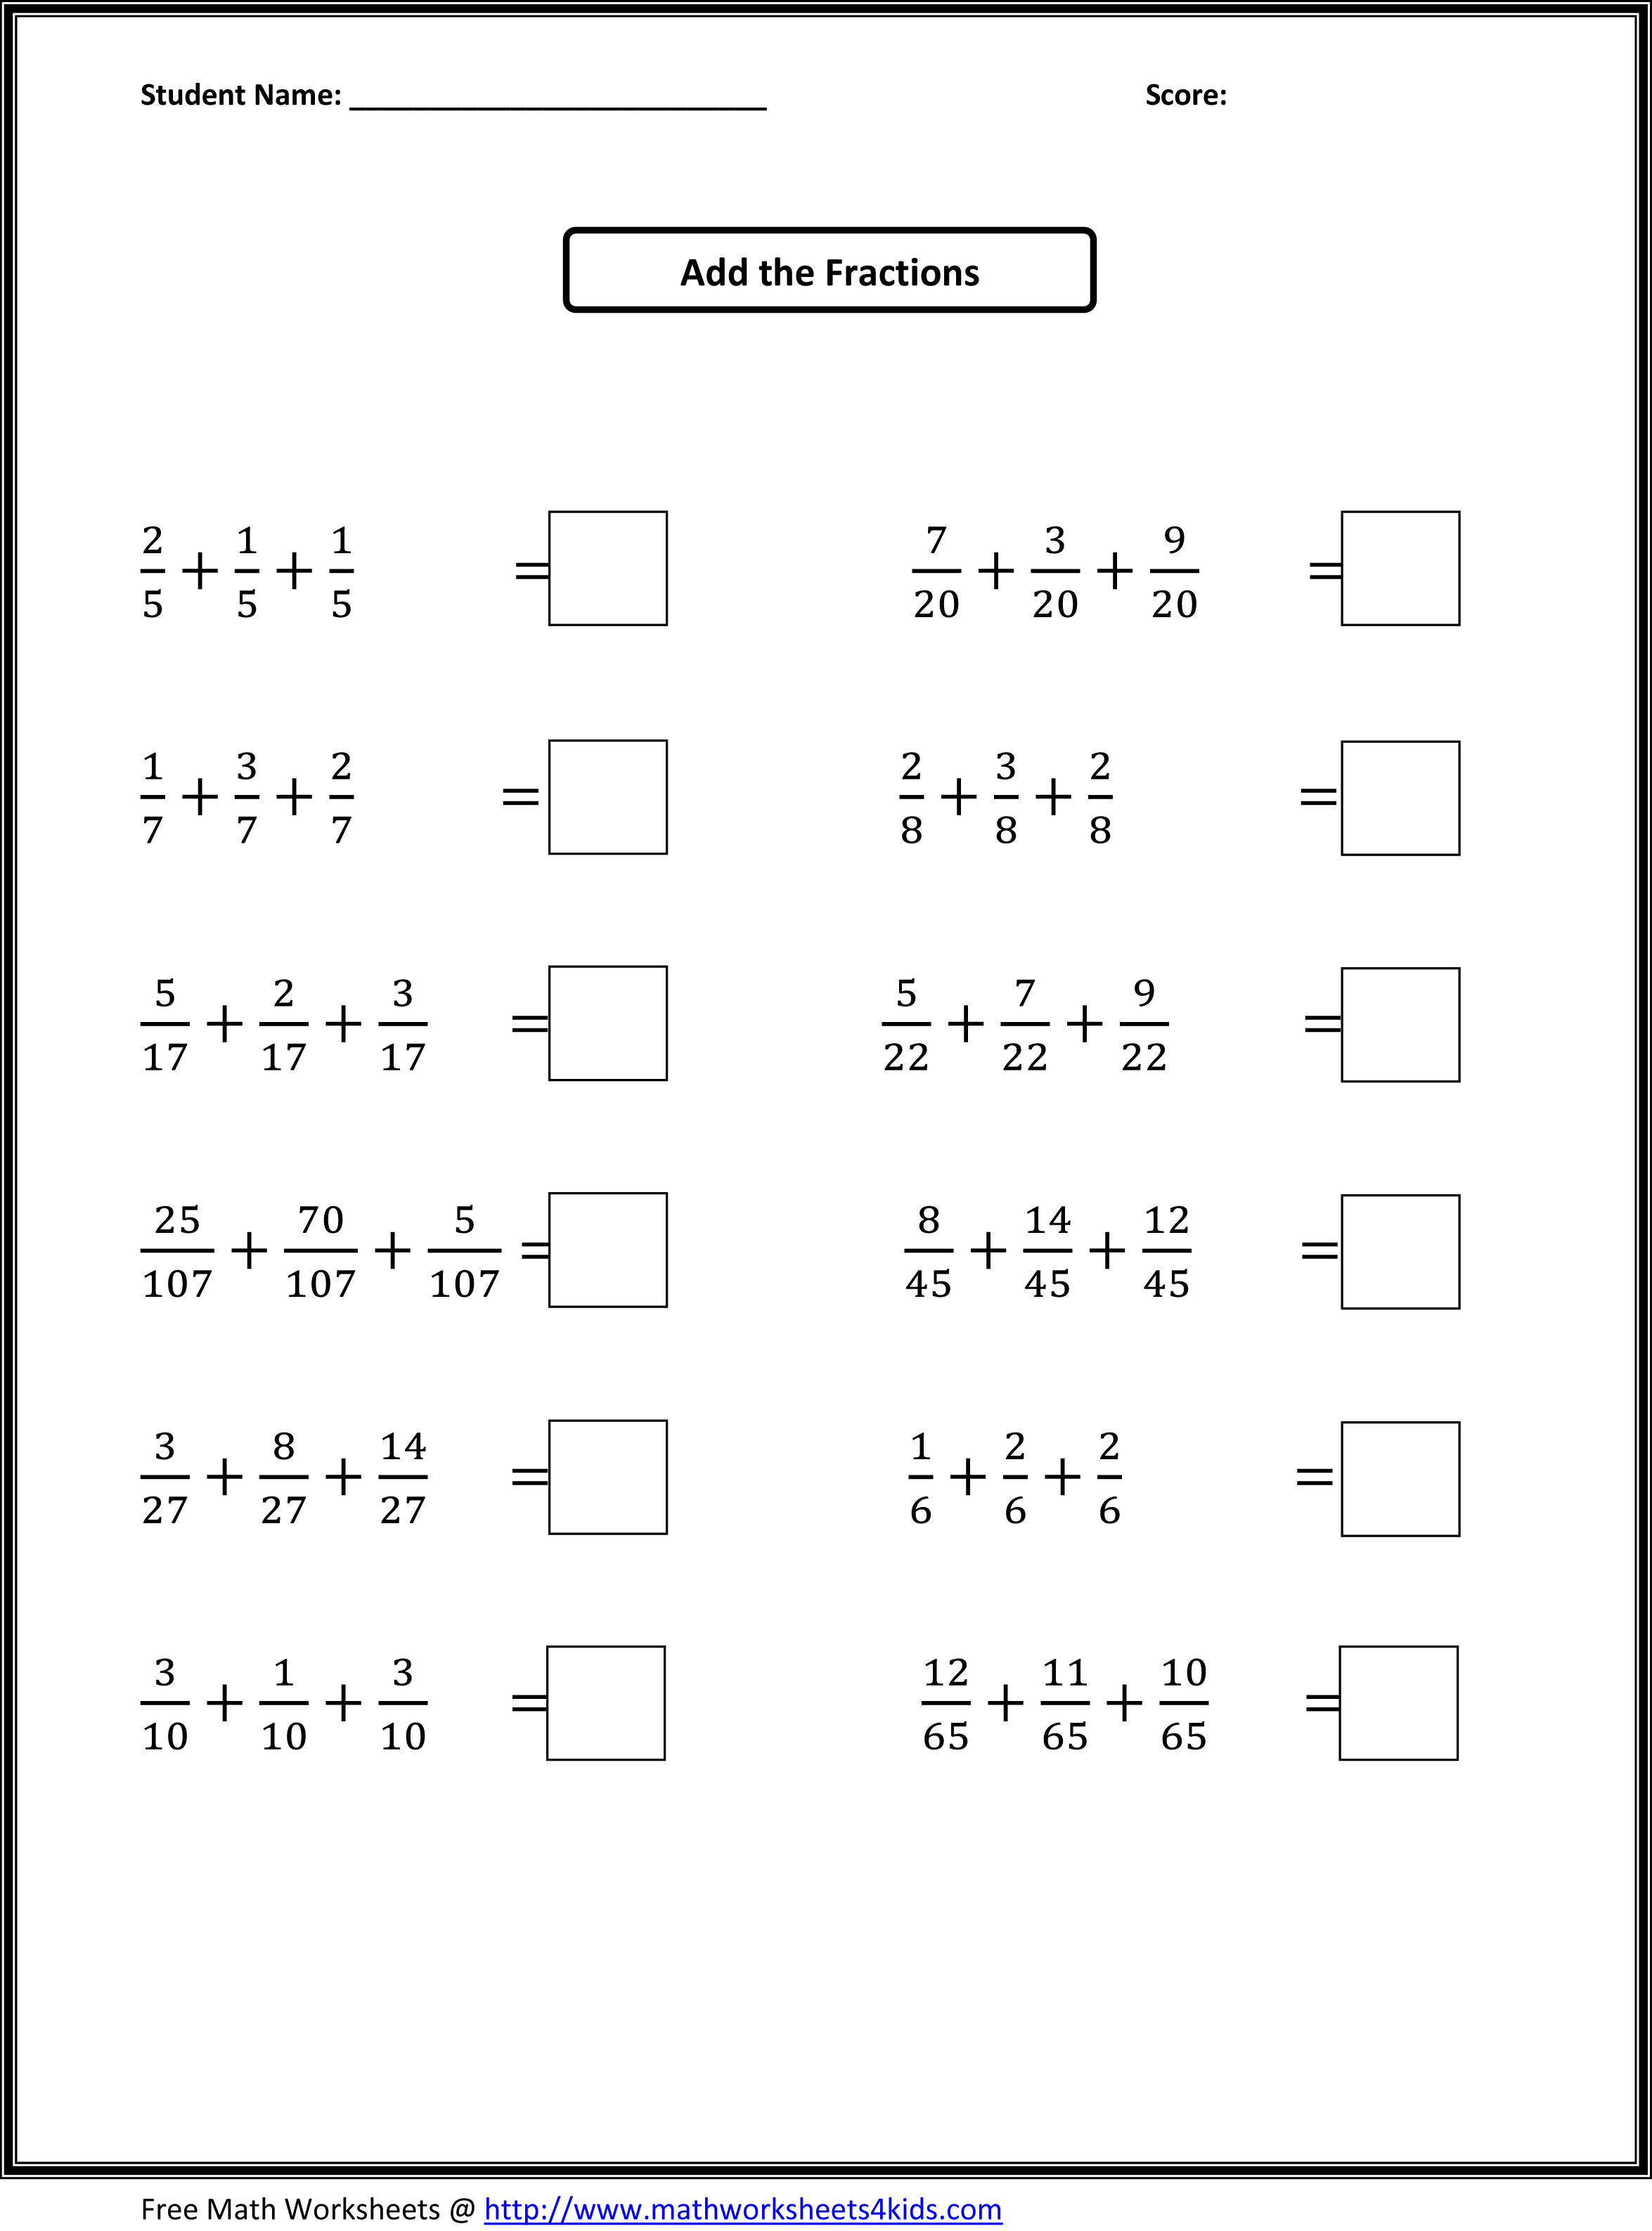 Printables Math Worksheets For 5th Grade Fractions 4th grade math worksheets multiplying fractions kids activities addition of worksheets